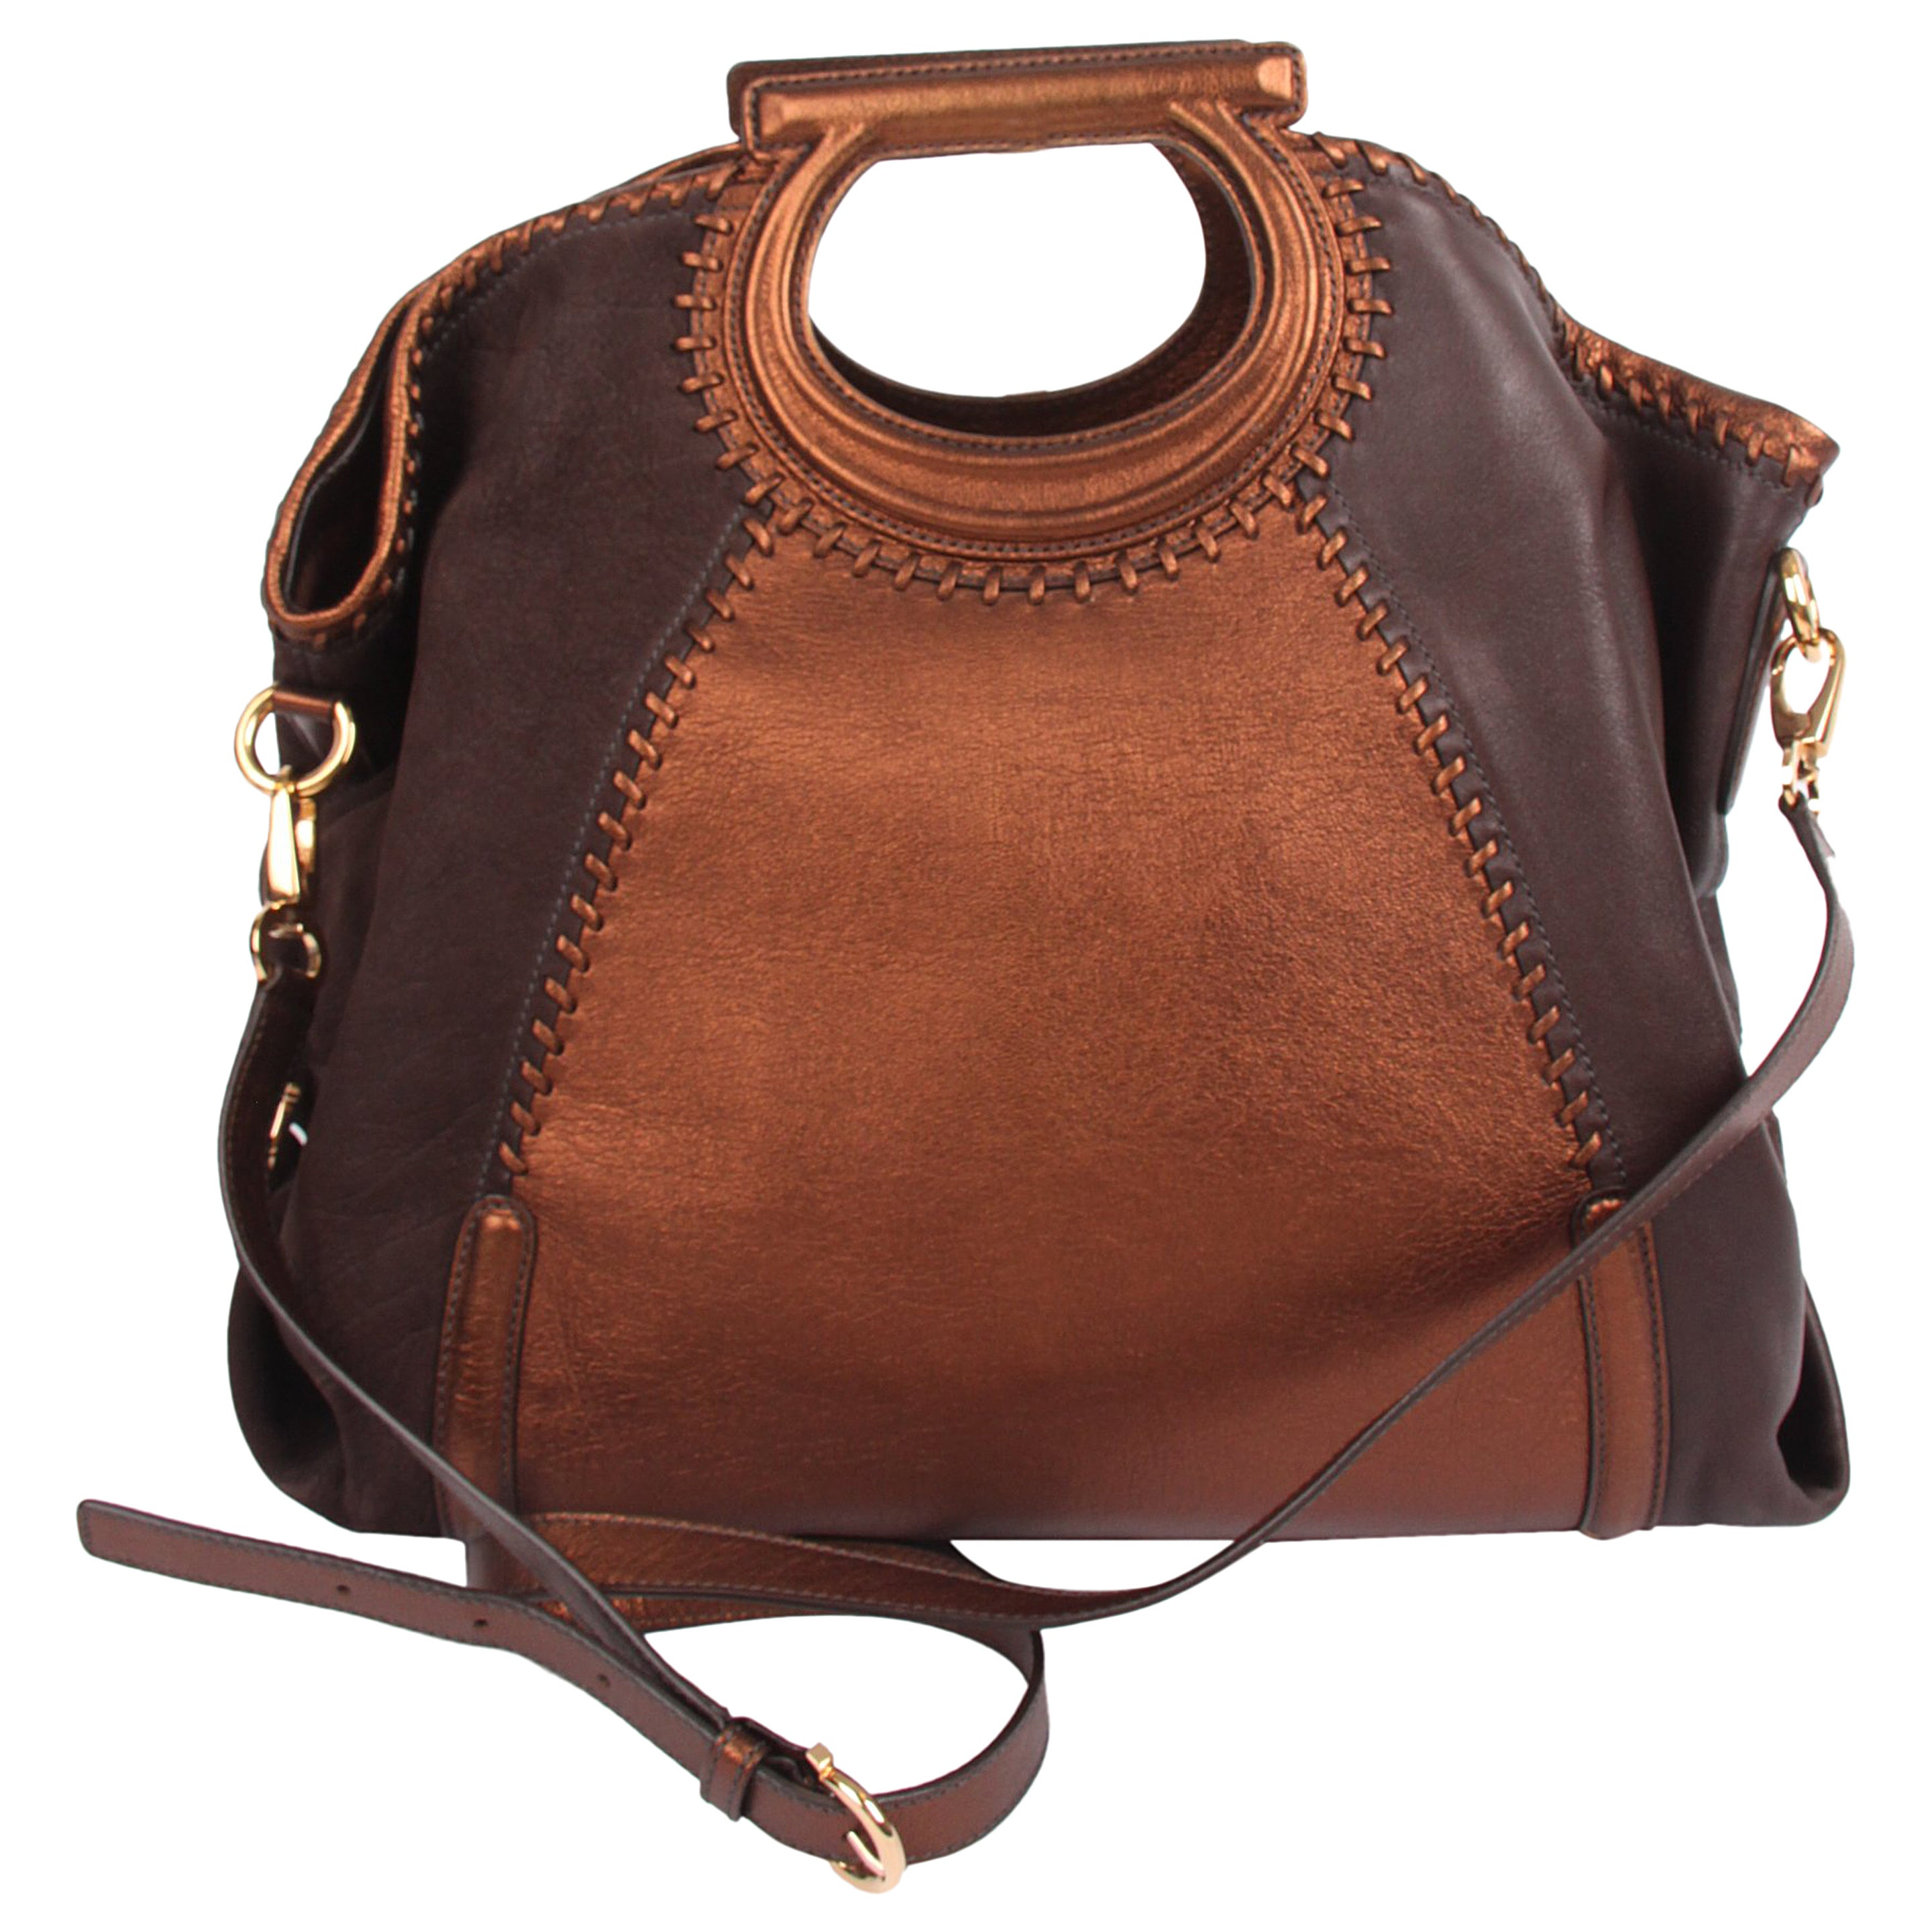 5fc1db22a0 Salvatore Ferragamo Leather Top Handle Bag - brown metallic brown For Sale  at 1stdibs